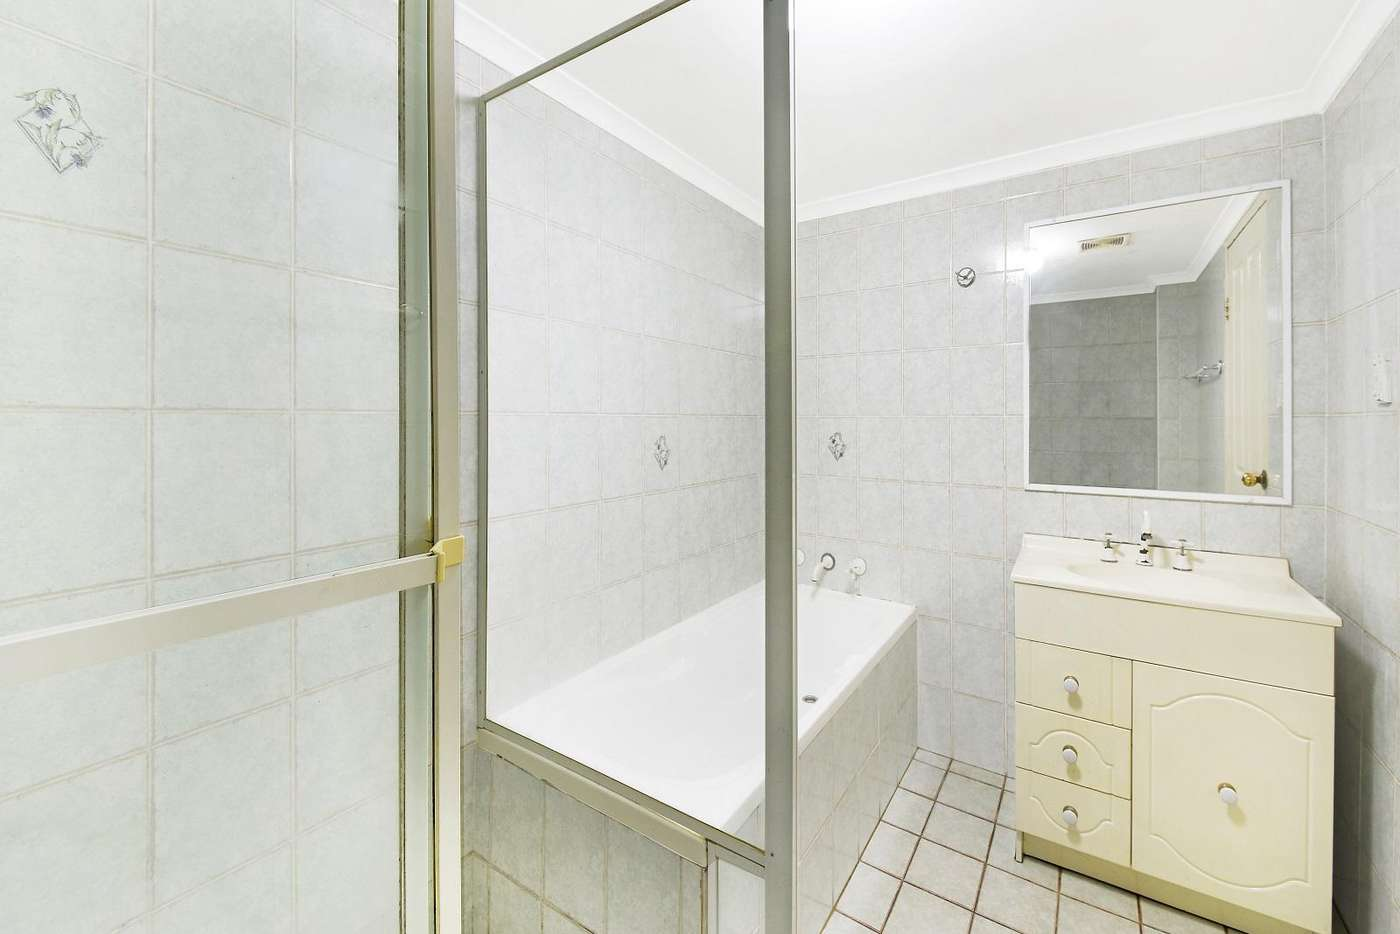 Seventh view of Homely apartment listing, 21/26 Linda Street, Hornsby NSW 2077